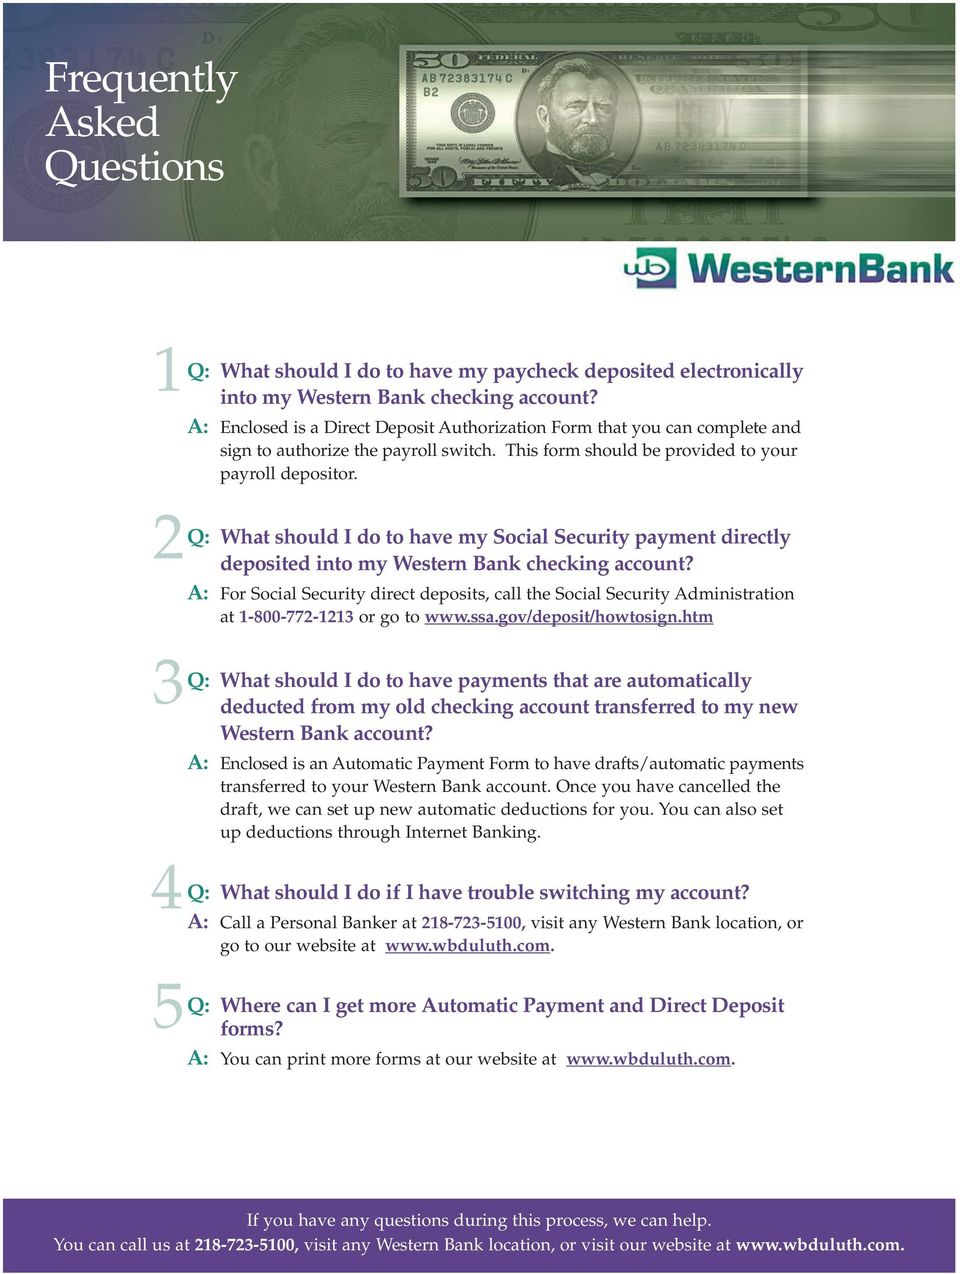 Q: What should I do to have my Social Security payment directly deposited into my Western Bank checking account?